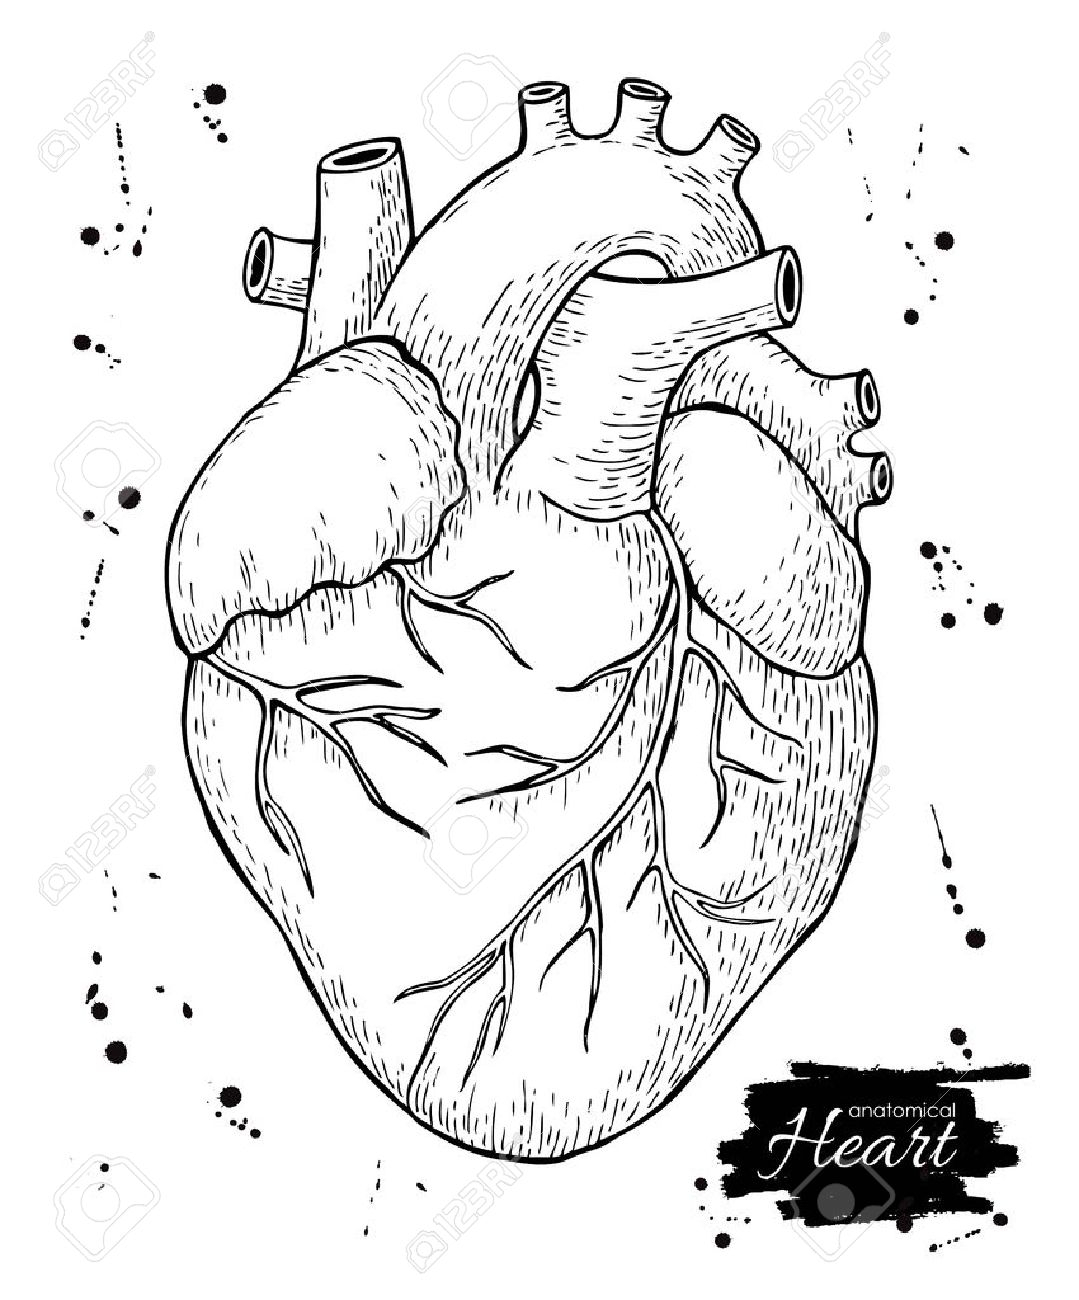 Real Heart Drawing At Getdrawings